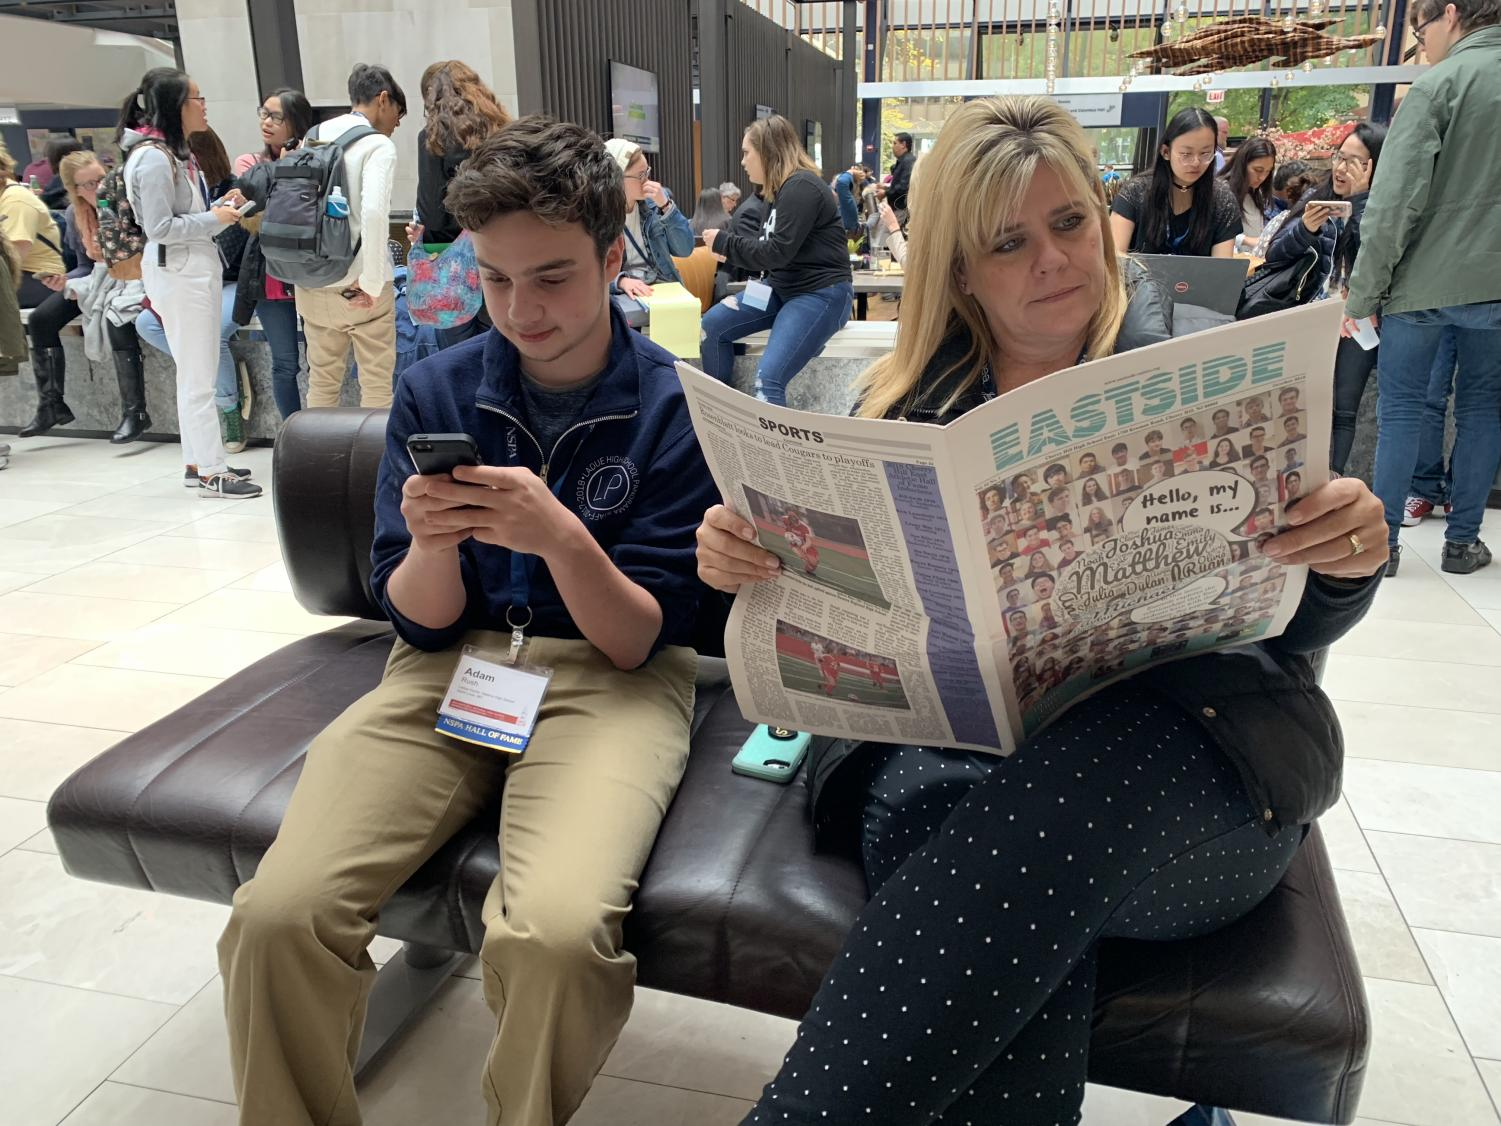 Generation Z and The Media